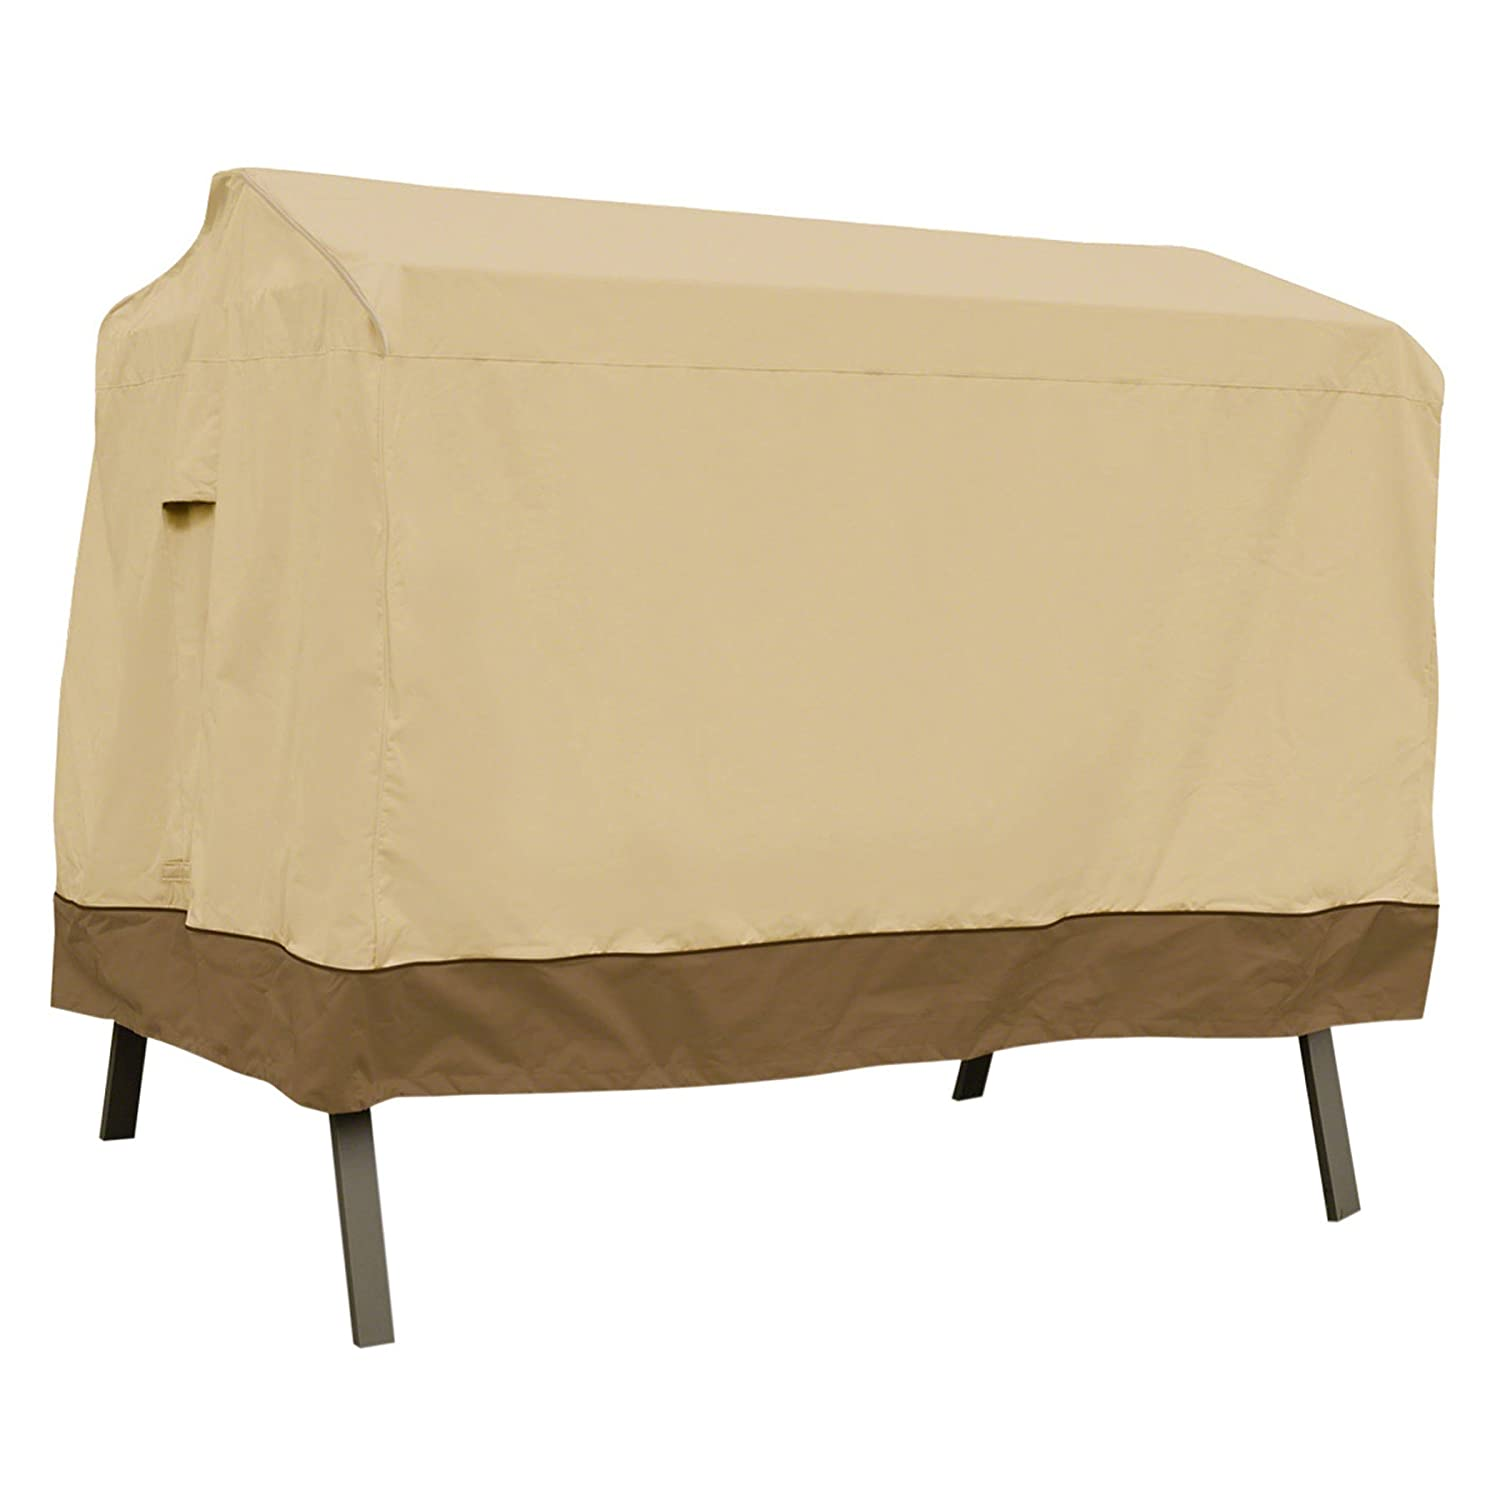 Classic Accessories 72962 Veranda 2-Seater Patio Canopy Swing Cover